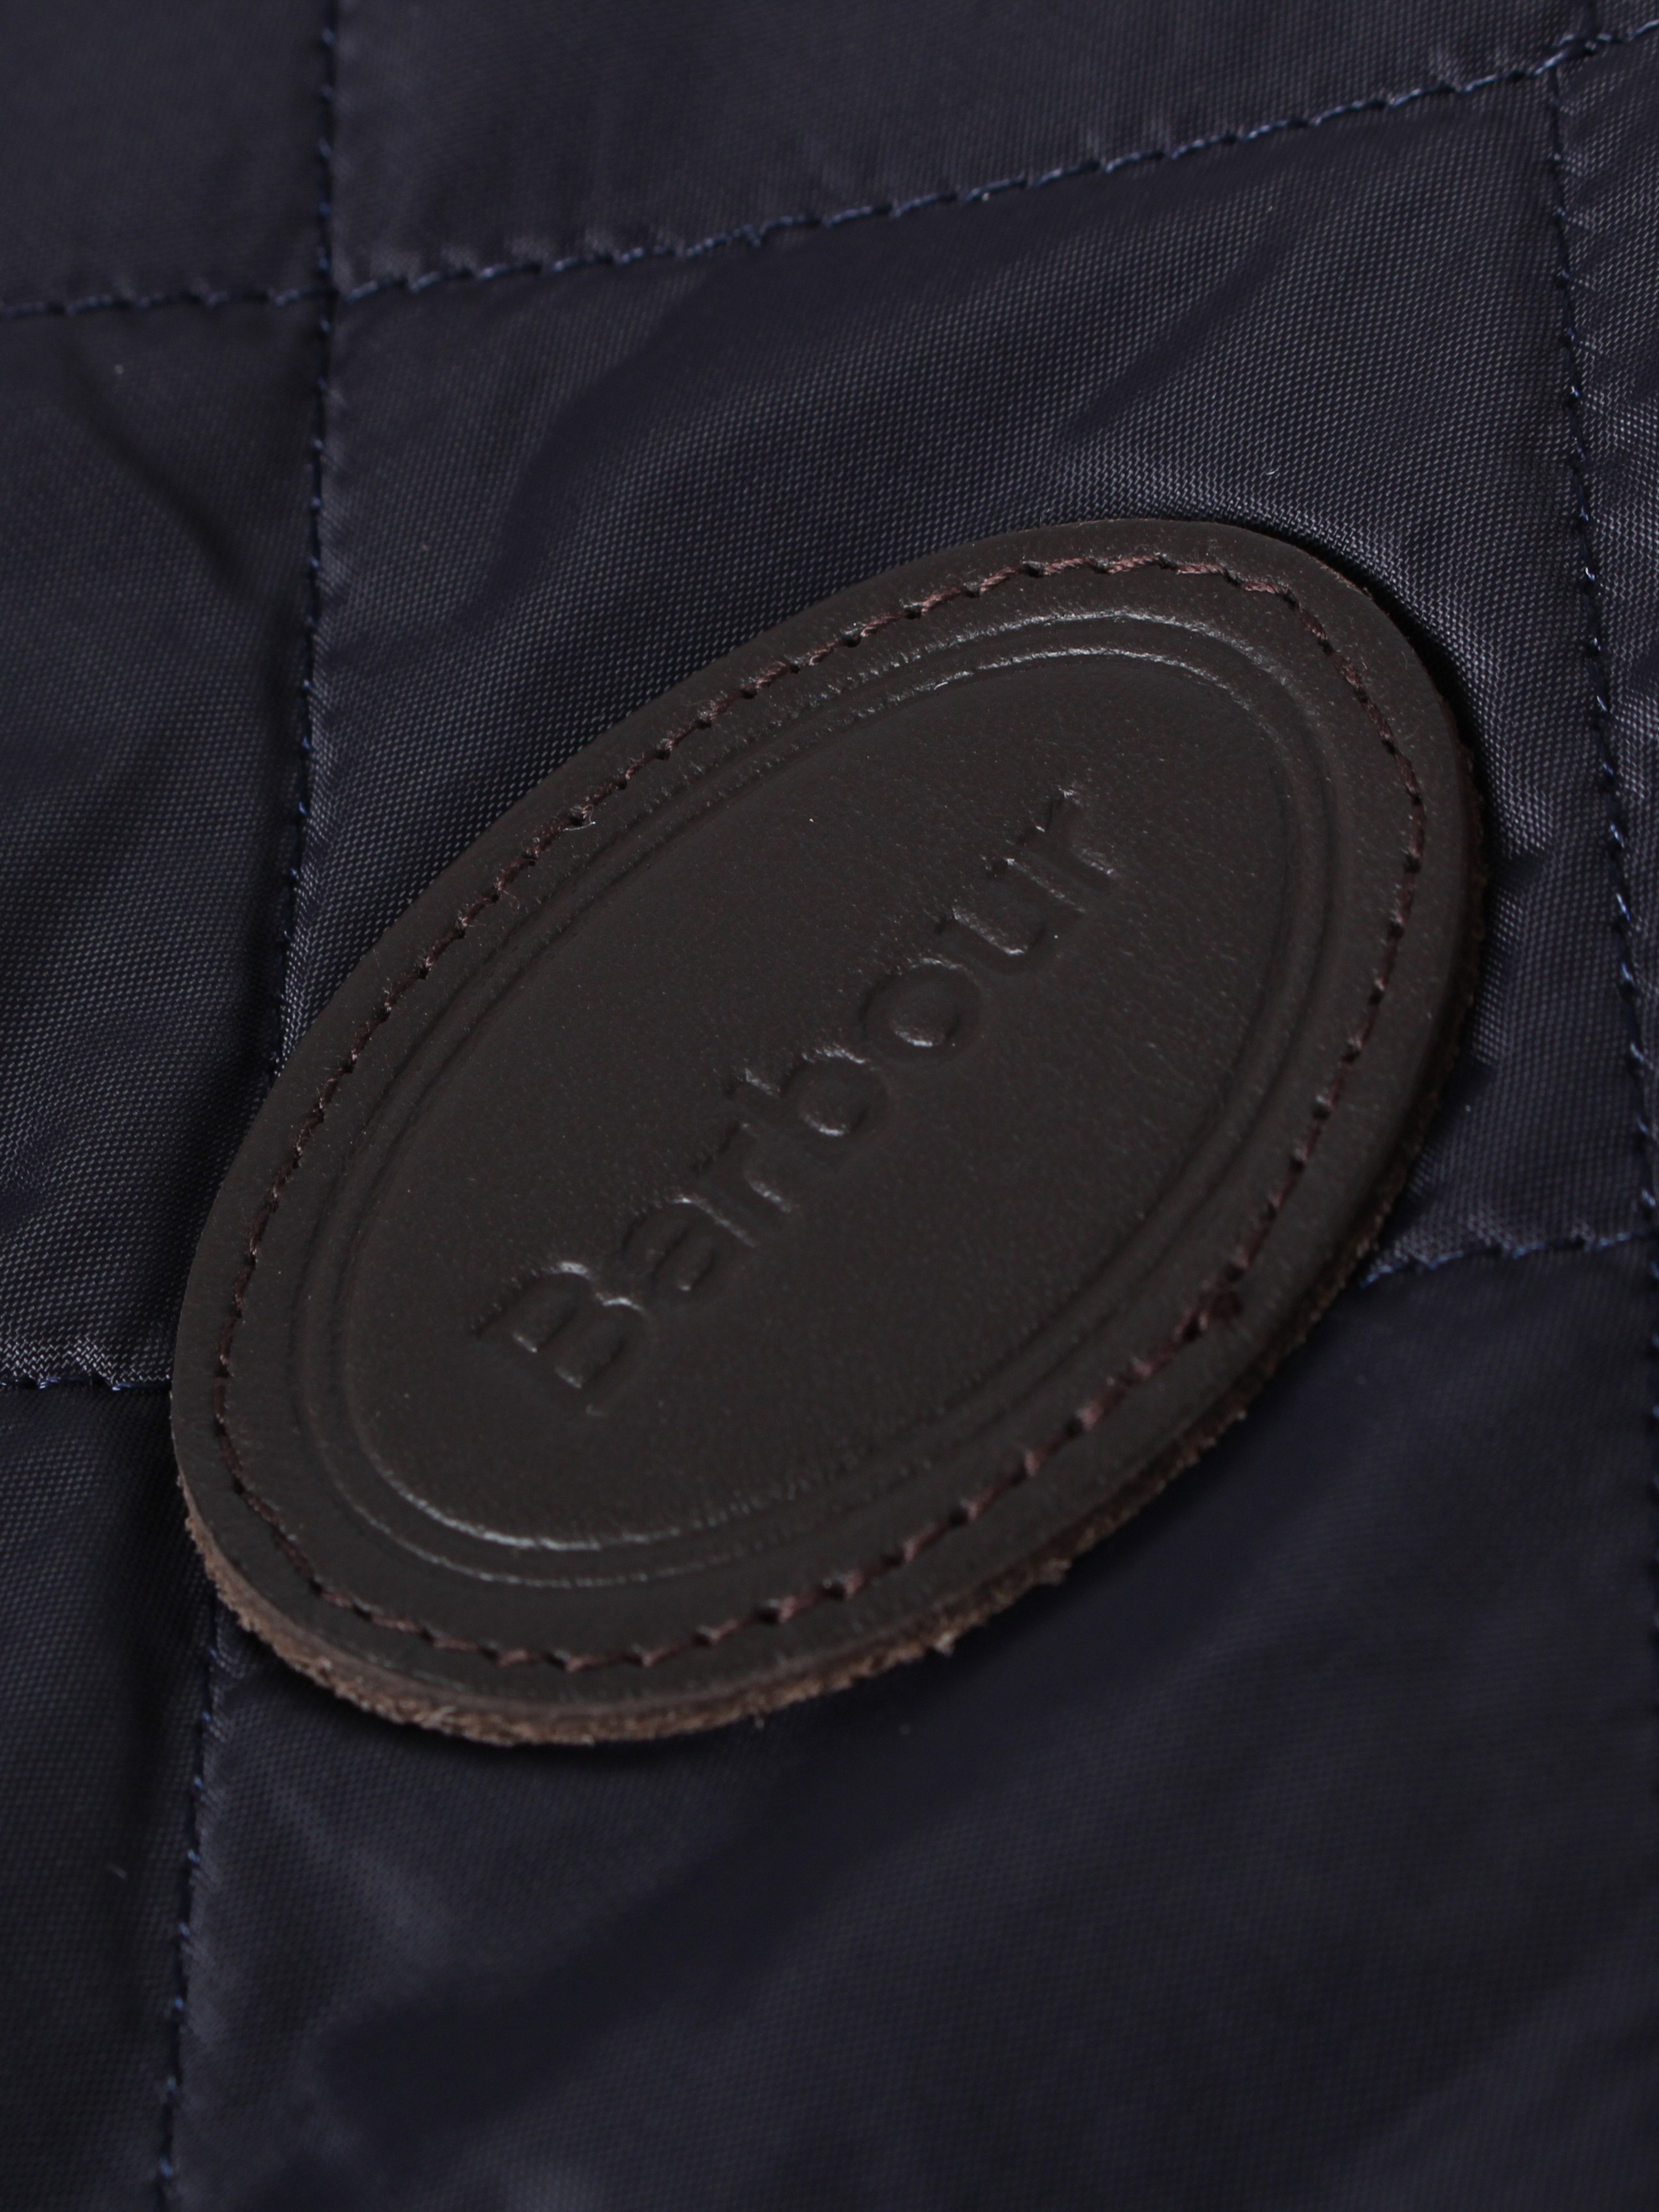 Barbour Quilted Dog Coat - Navy